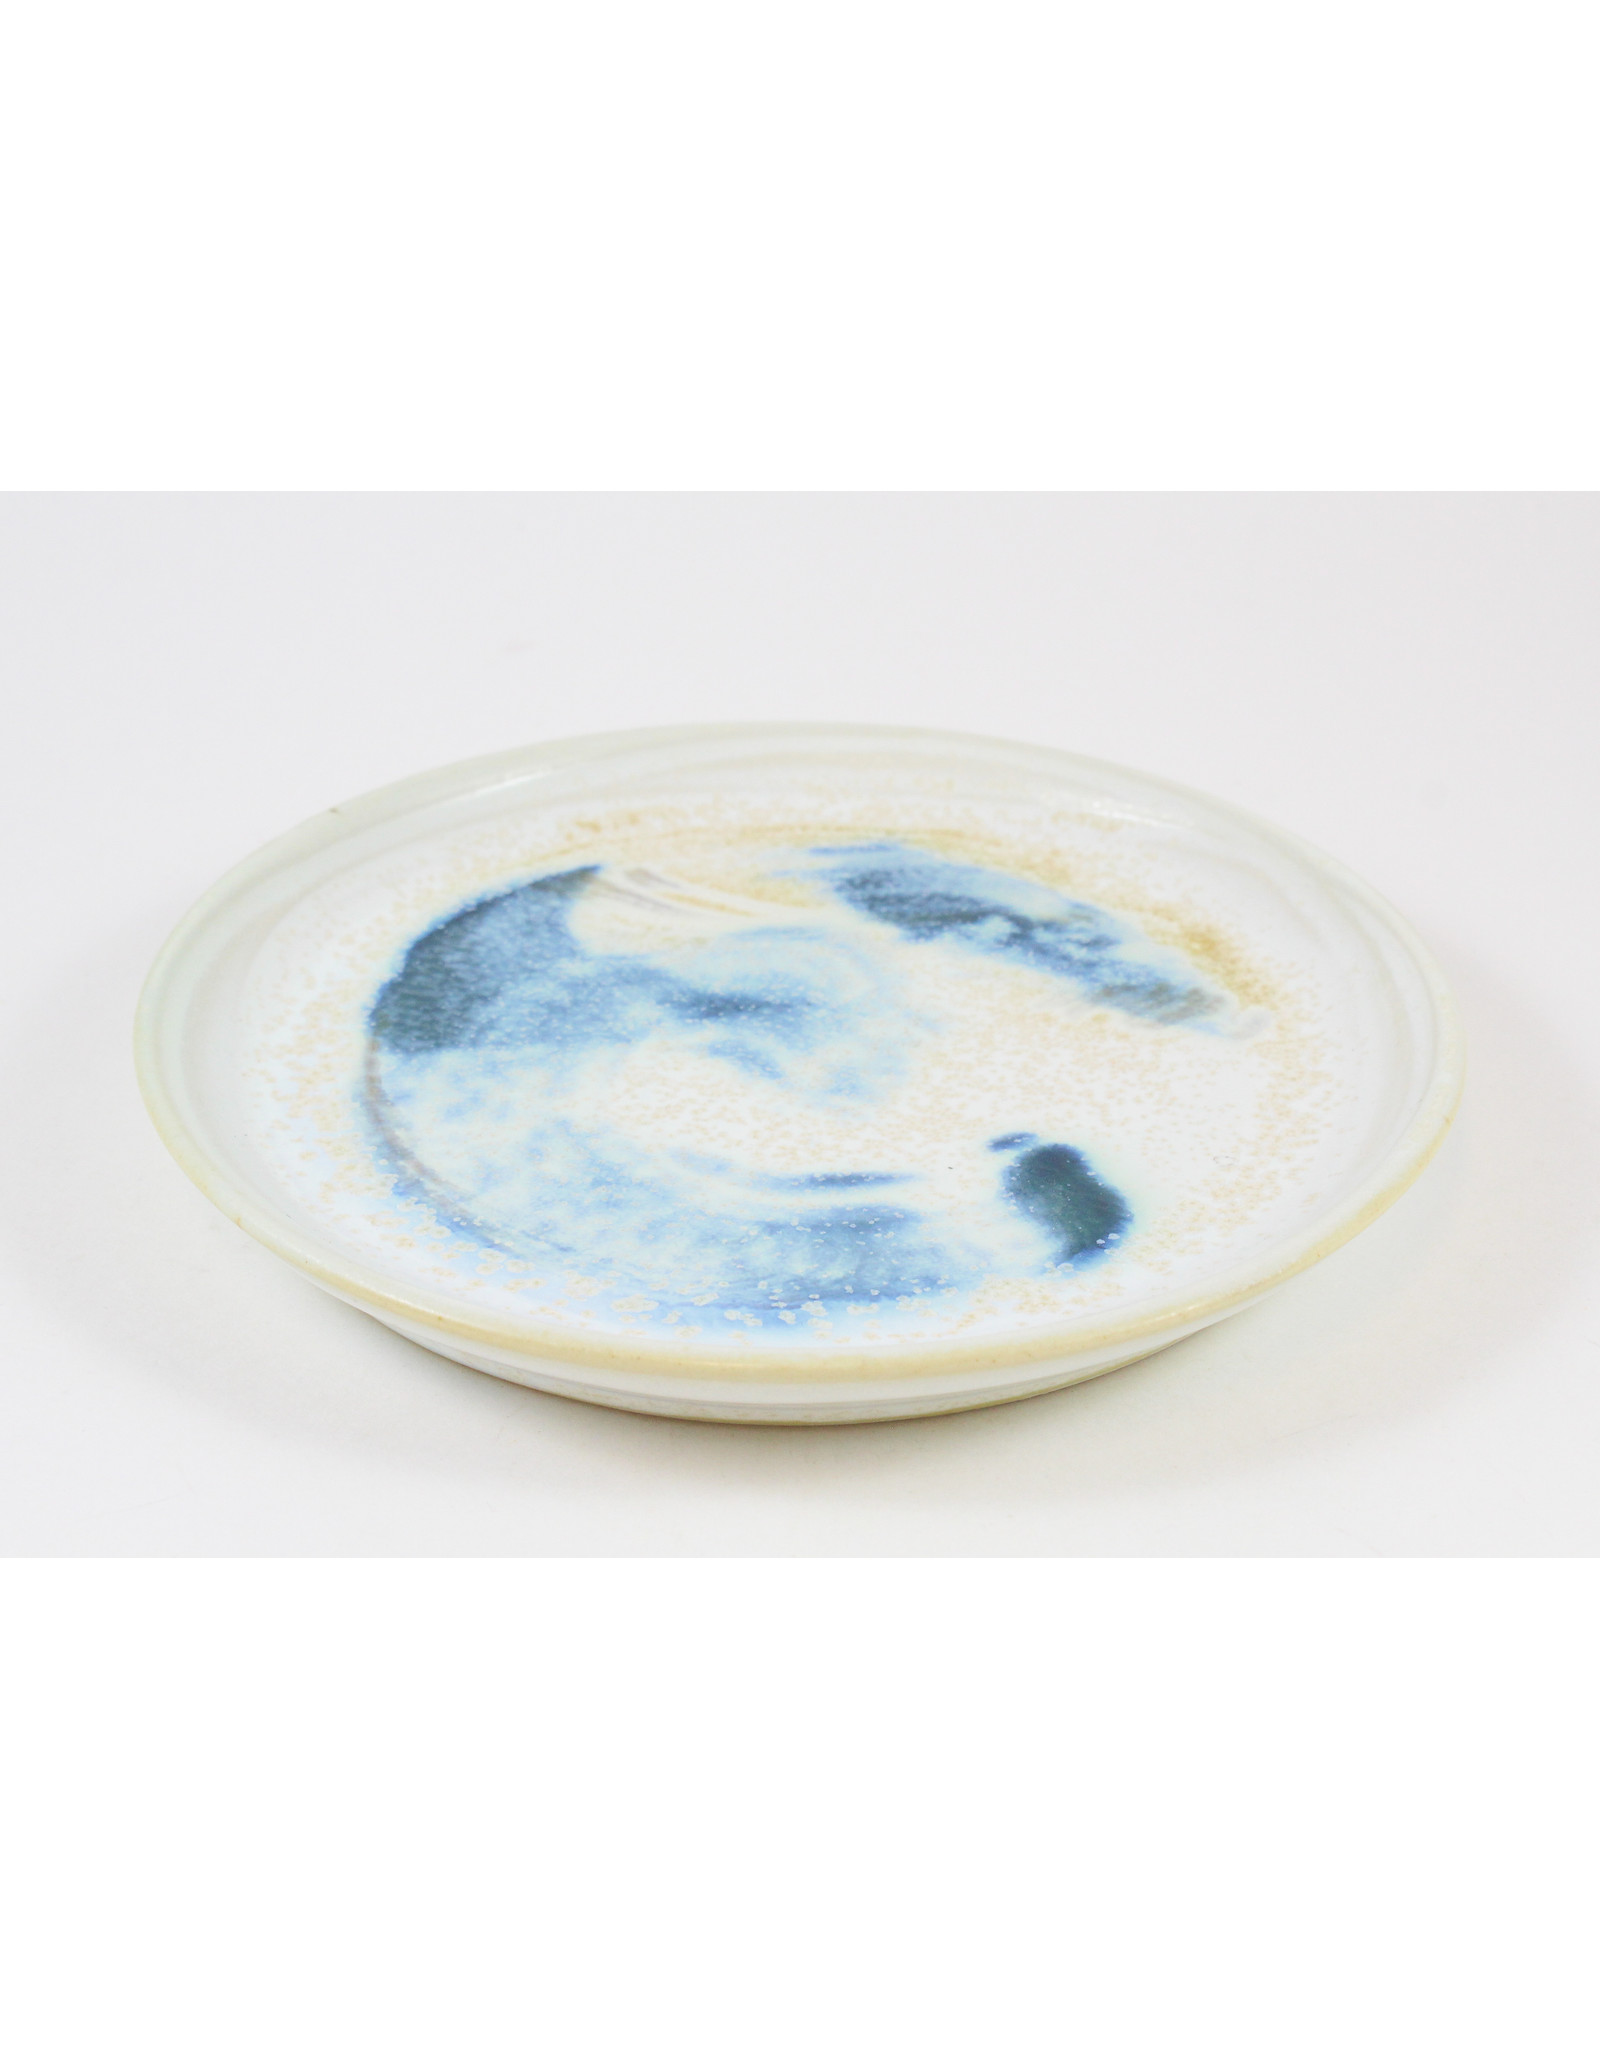 Linda Wright Oceanic Side Plate by Linda Wright